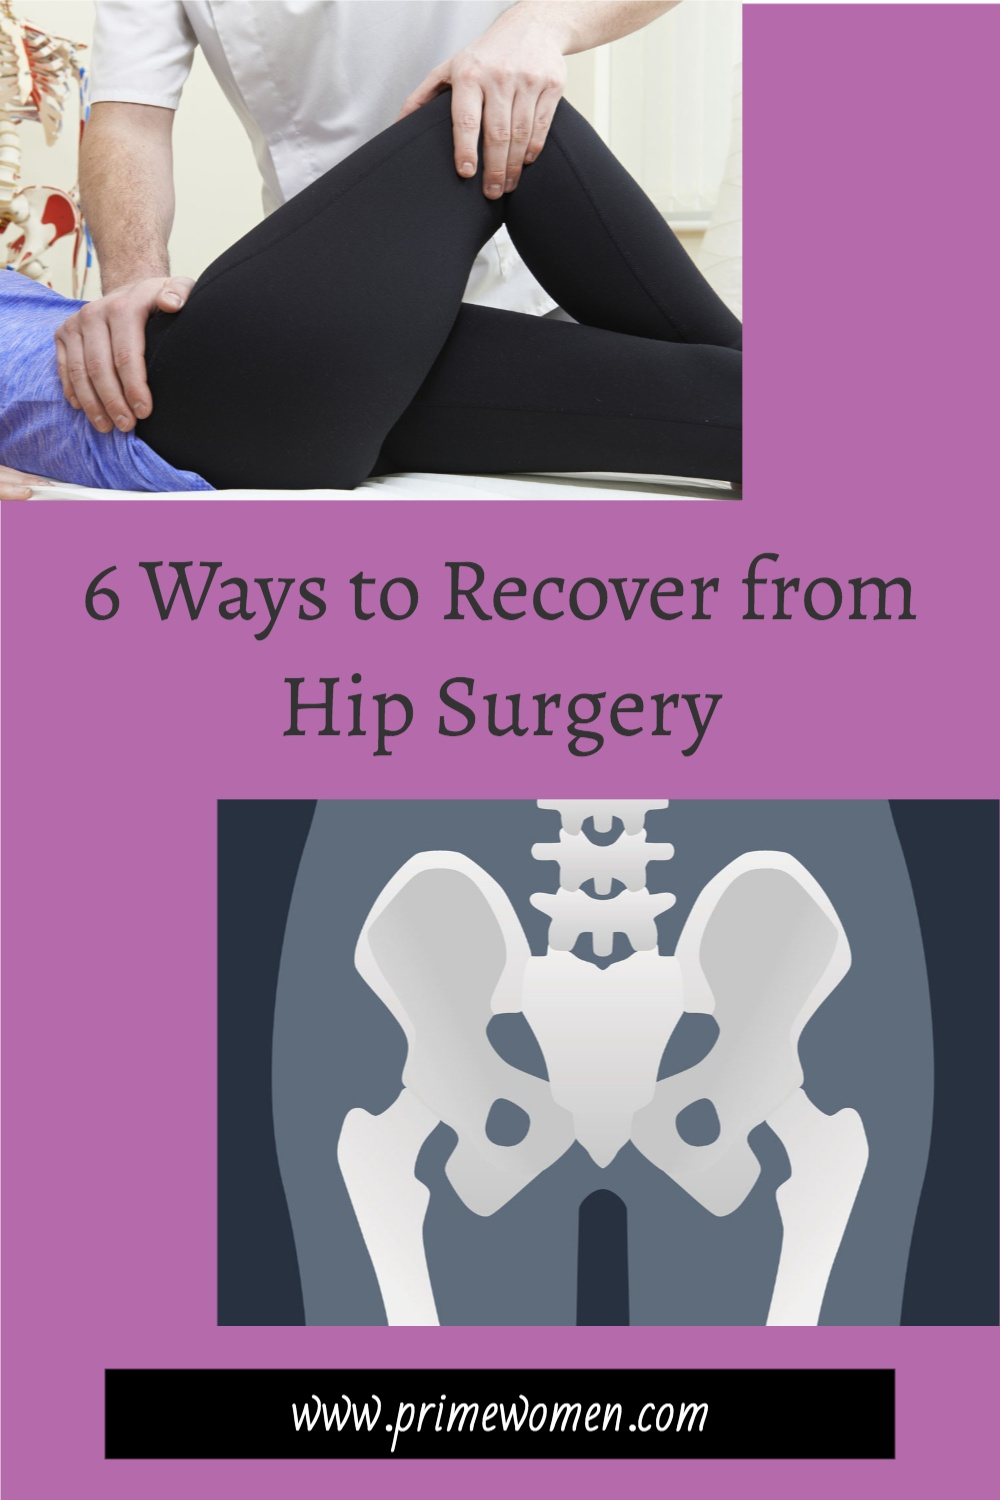 6 ways to recover from hip surgery